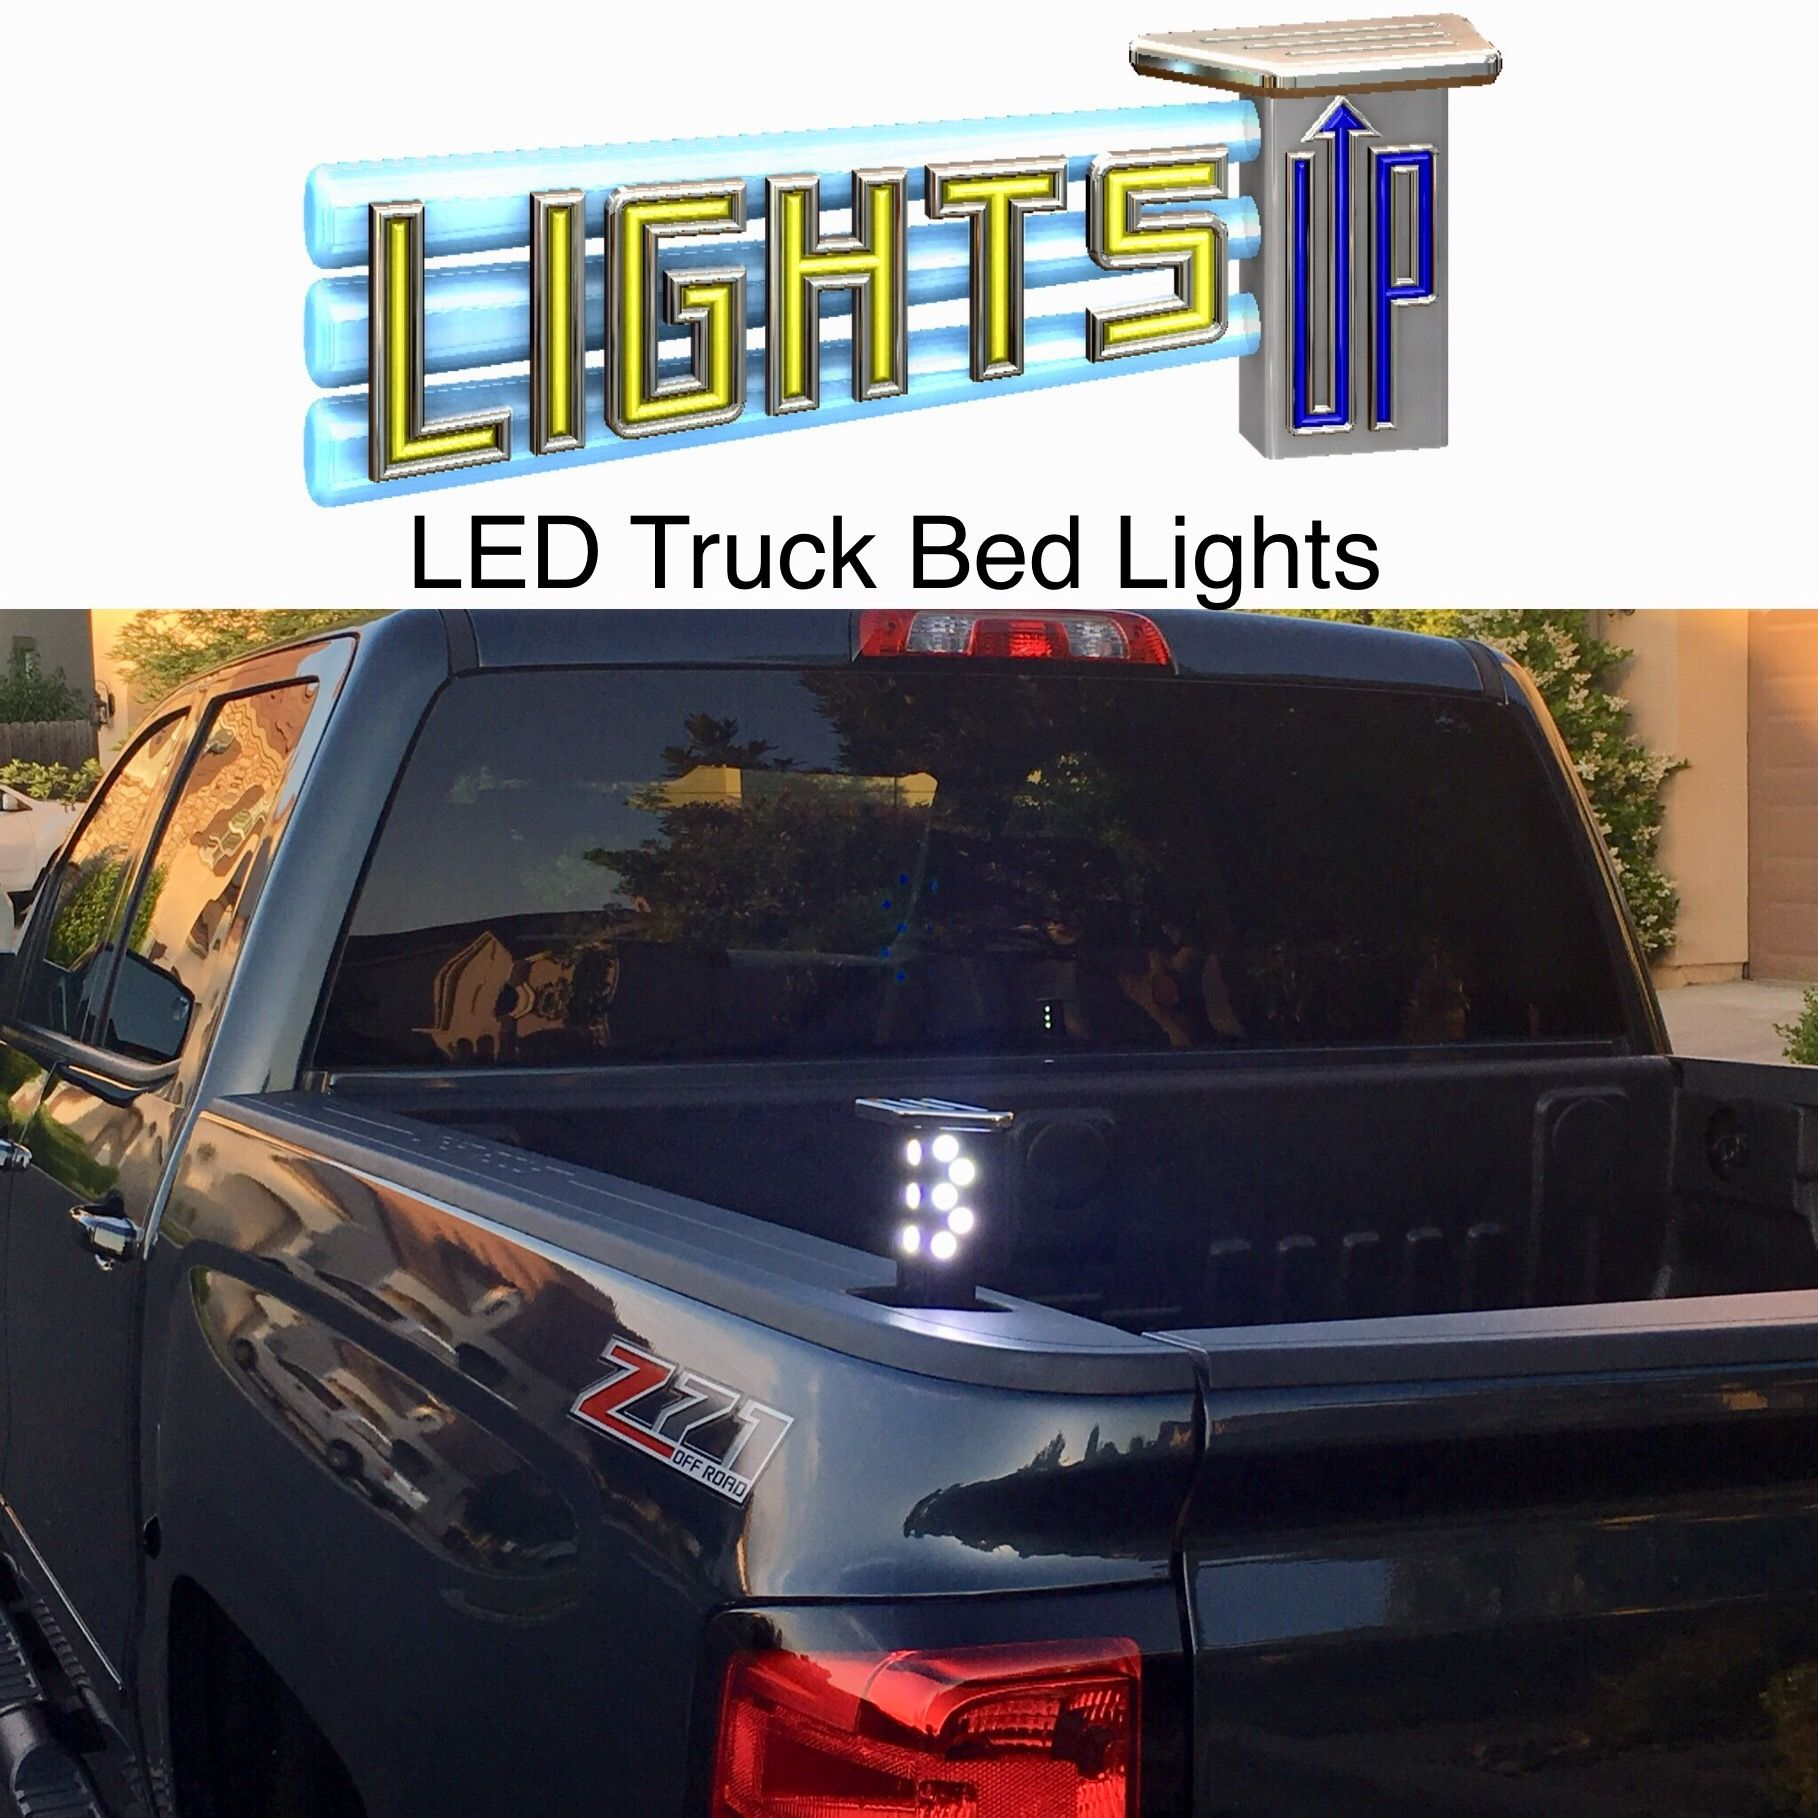 AUTOMATIC & KEYLESS LED TRUCK BED LIGHTS KIT AVAILABLE FOR